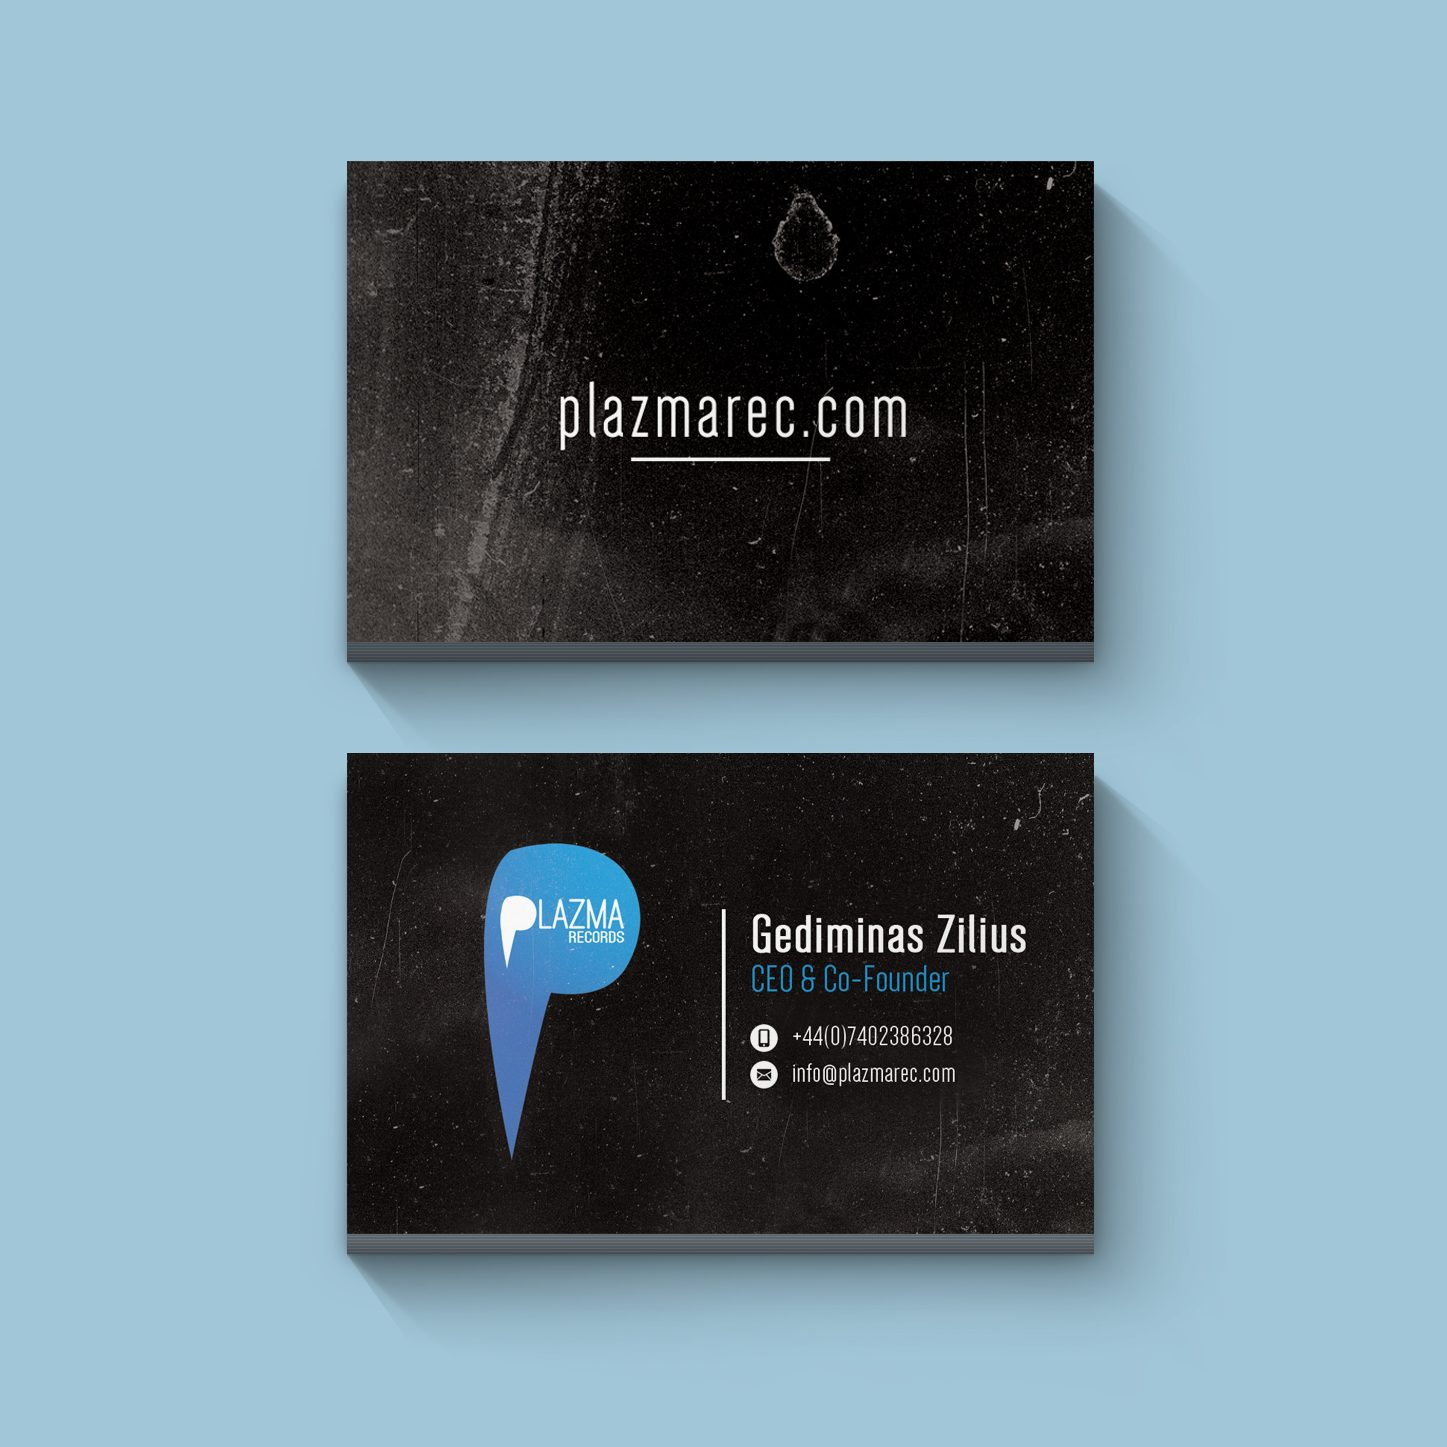 Record Label Business cards Minimal Design